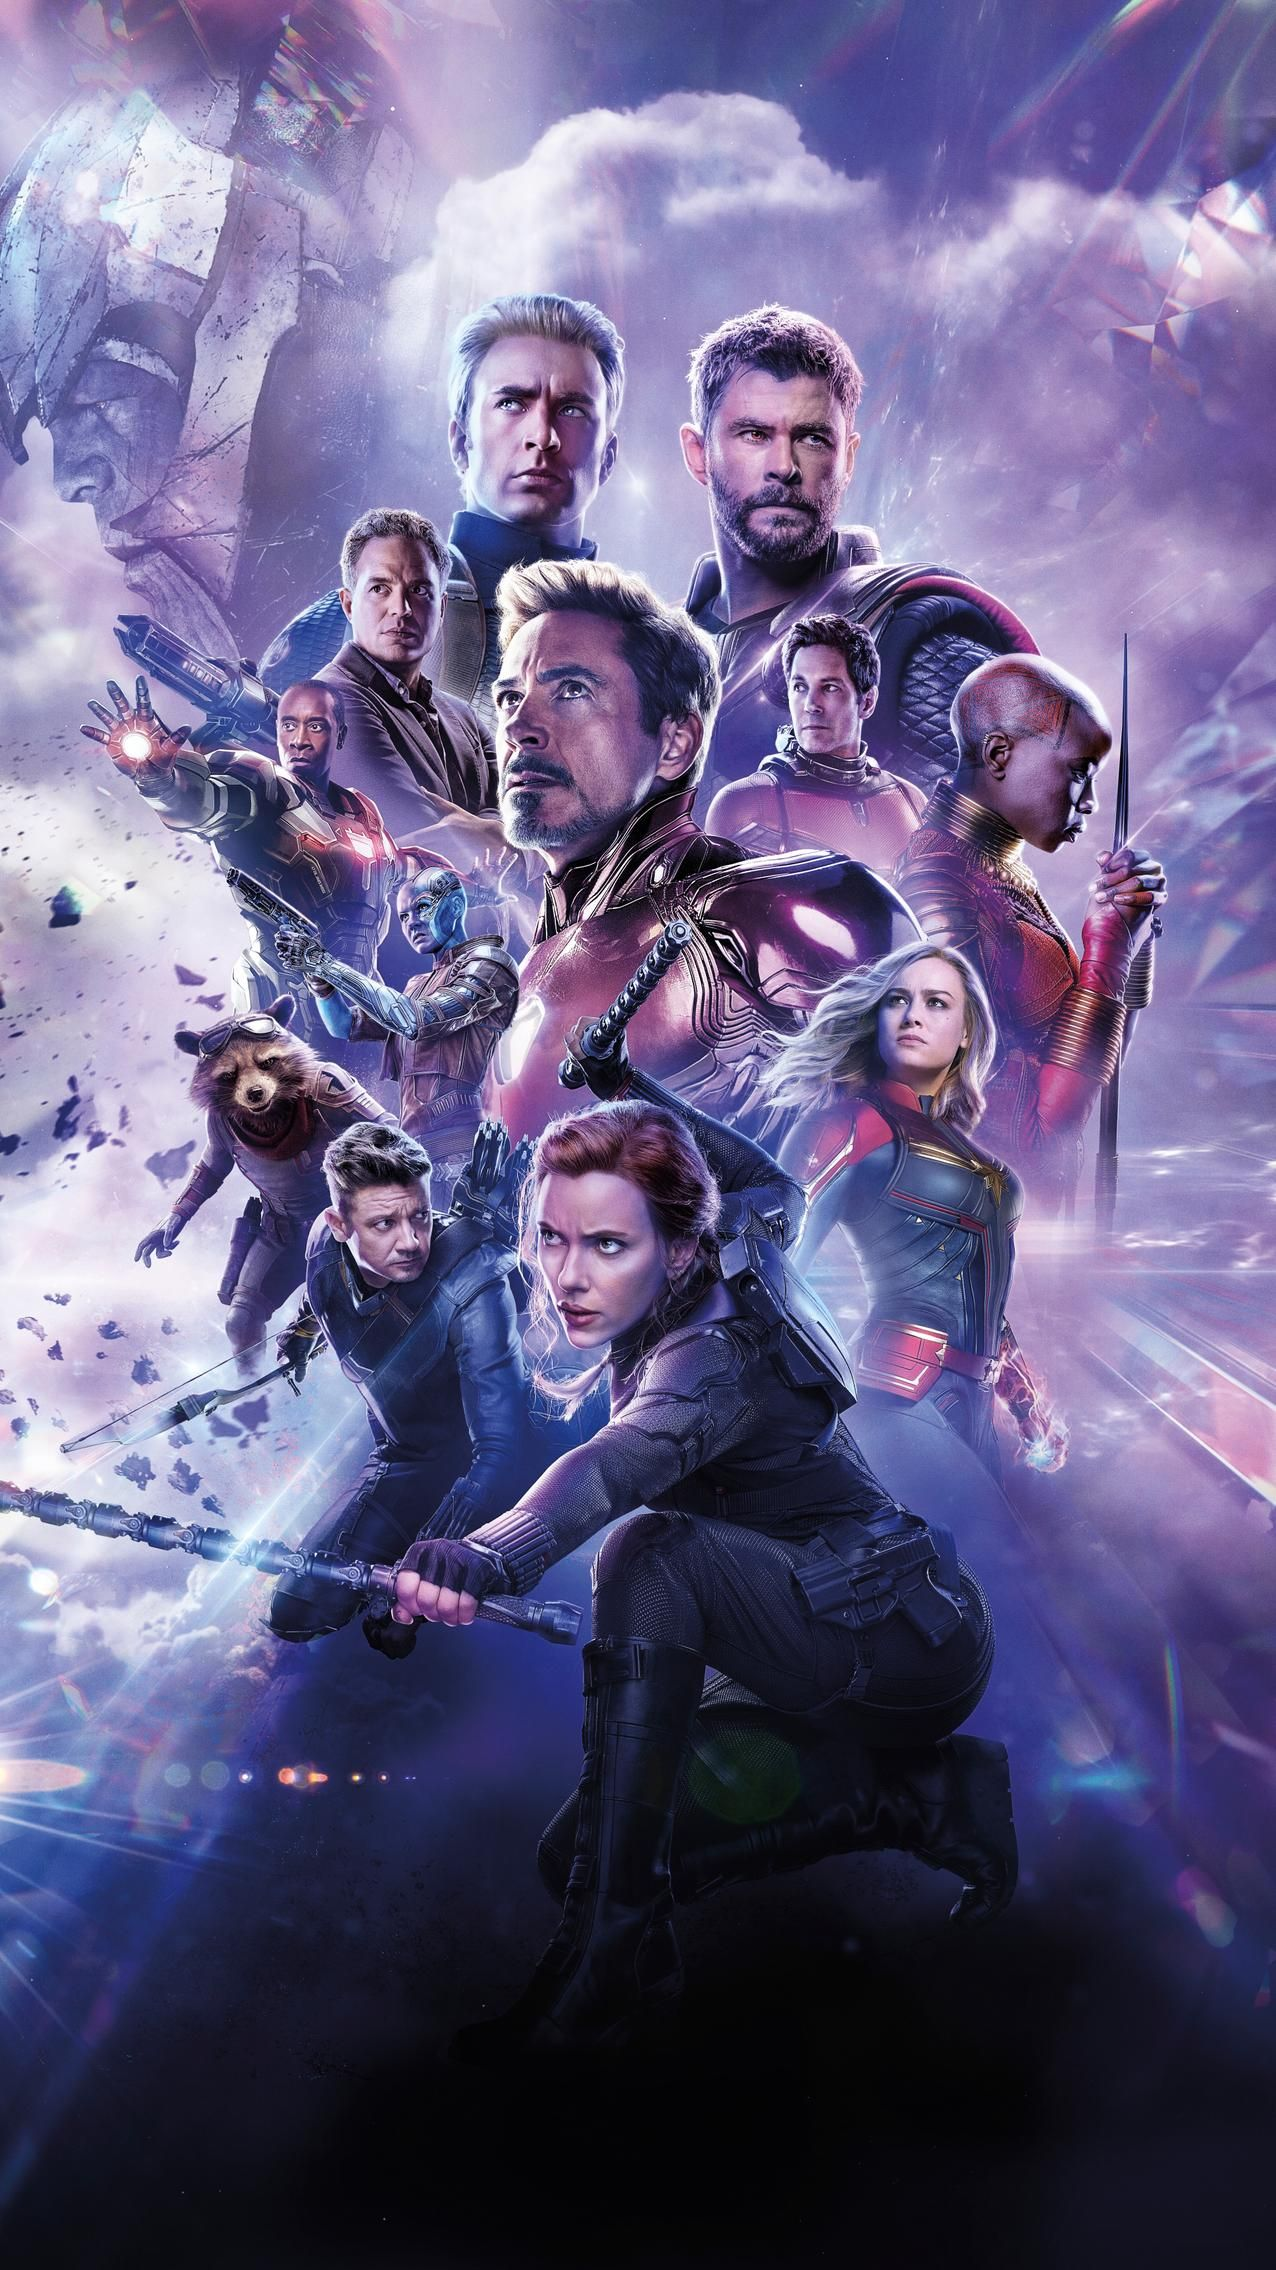 Avengers Endgame 2019 Phone Wallpaper Moviemania Marvel Background Marvel Comics Wallpaper Marvel Superhero Posters